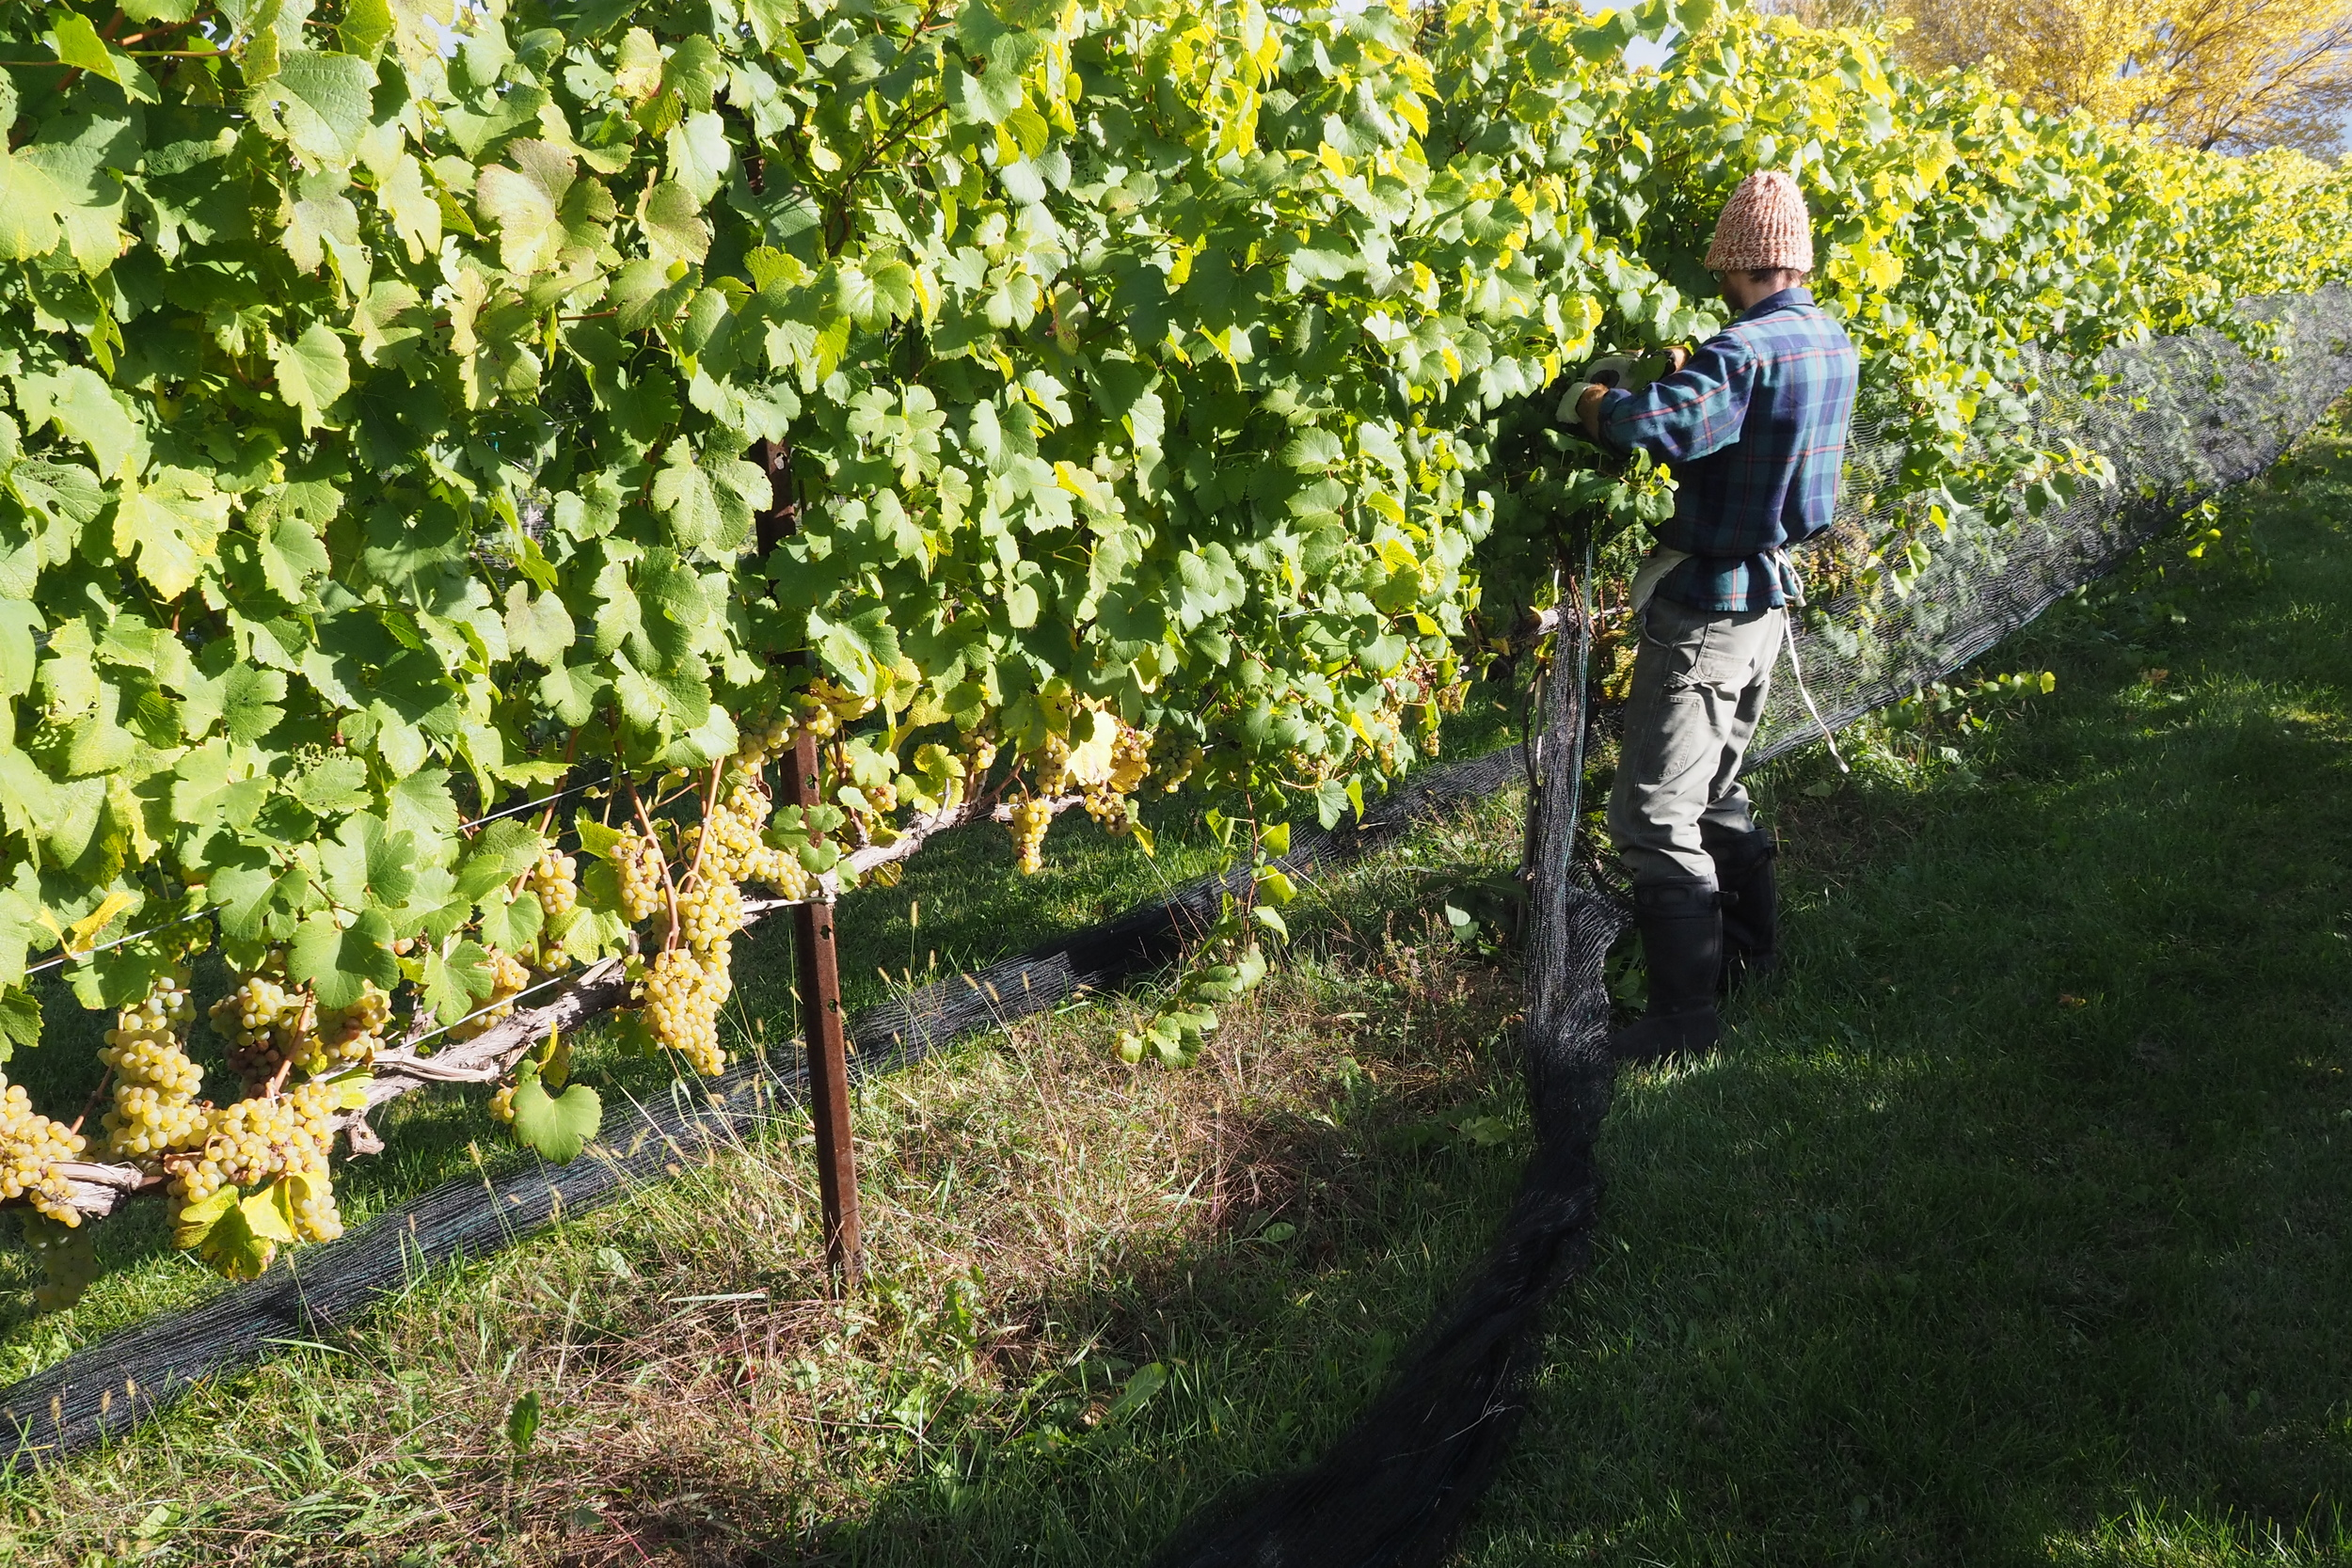 winemaker tending to grape vines.jpg